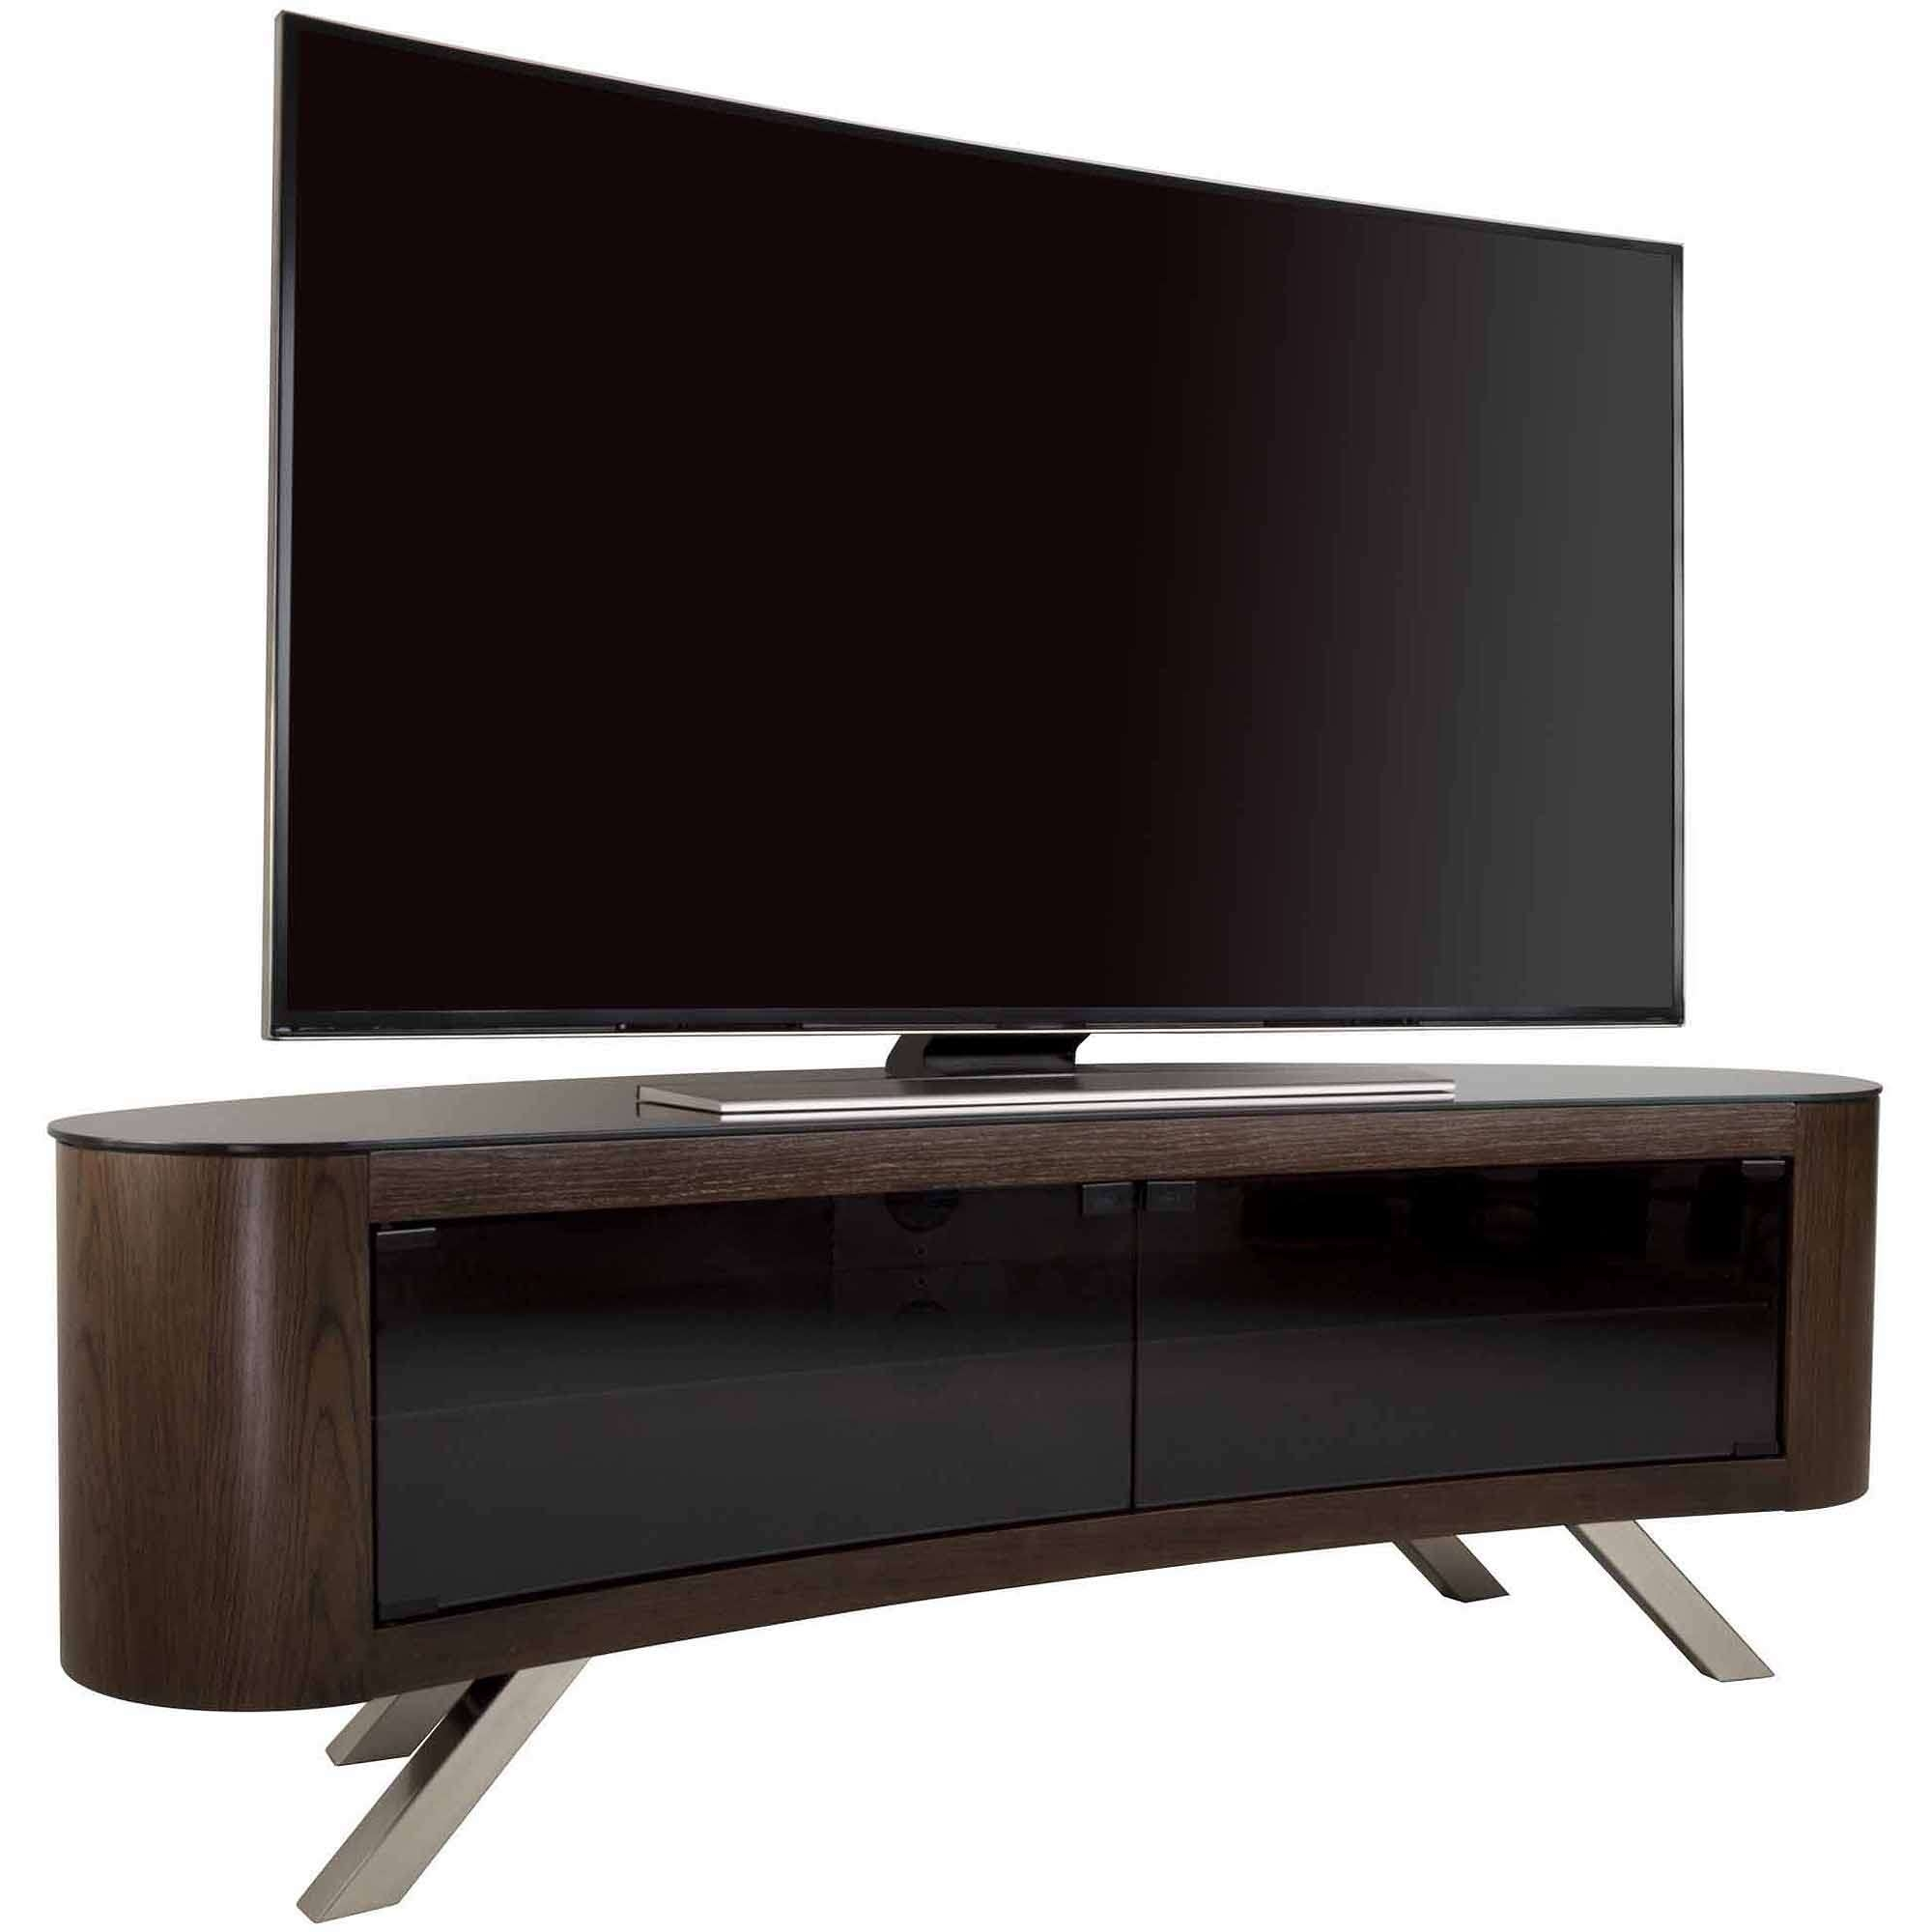 Tv Stands For Inch Avf Bay Curved Stand Tvs Up To 0e2b4cfbe0e8 1 Regarding Tv Stands For 70 Inch Tvs (View 4 of 15)